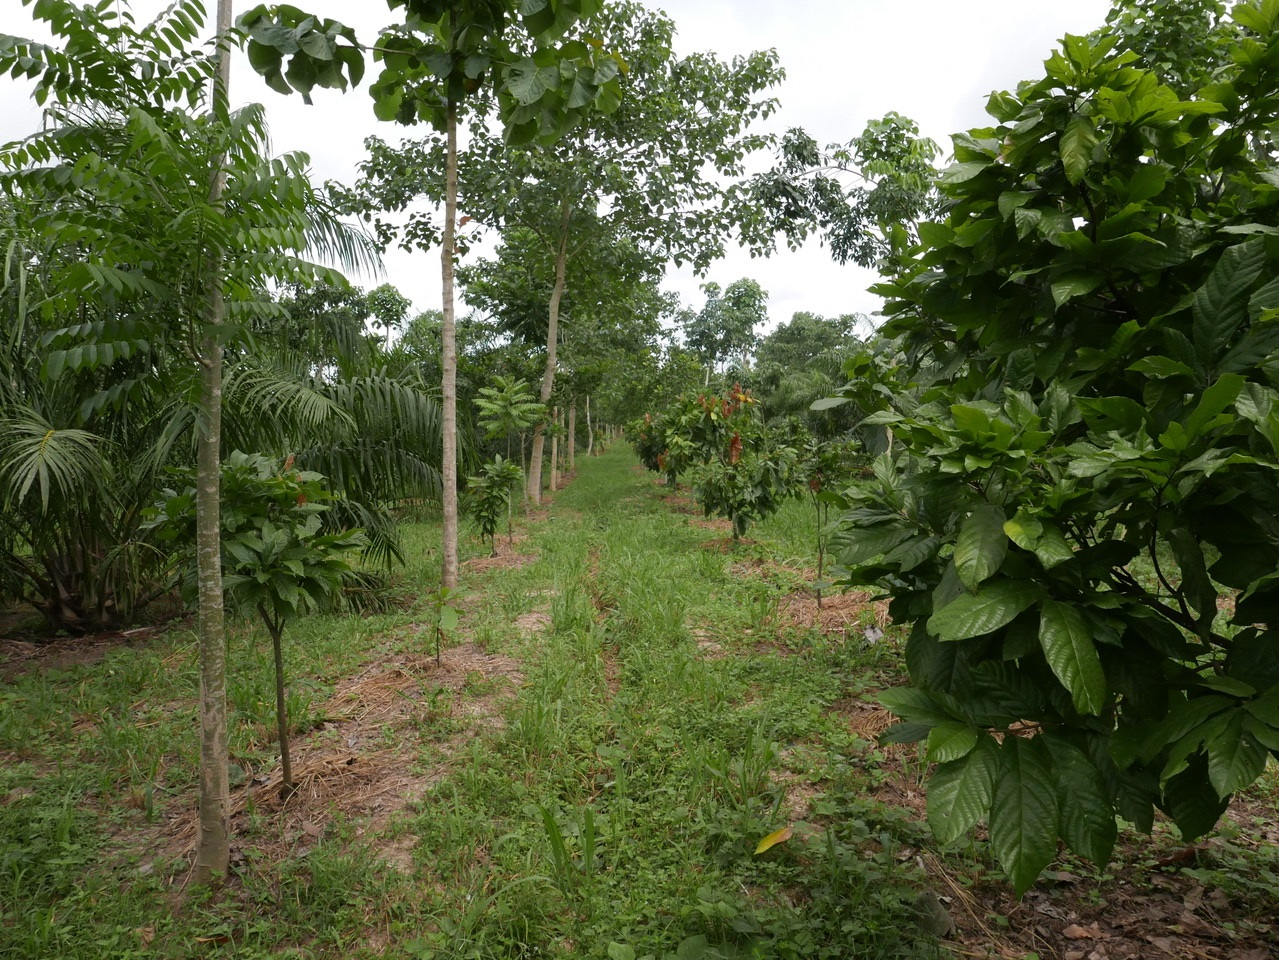 Fredy's Dynamic Agroforestry Plantation with different rows: oil palms (background left), timber tree row (left), fruit tree row (right), and rubber tree rows (not visible). Cocoa trees are planted every three meters, mulch is applied within the rows. (Photo credit: Joachim Milz, Ecotop Consult)